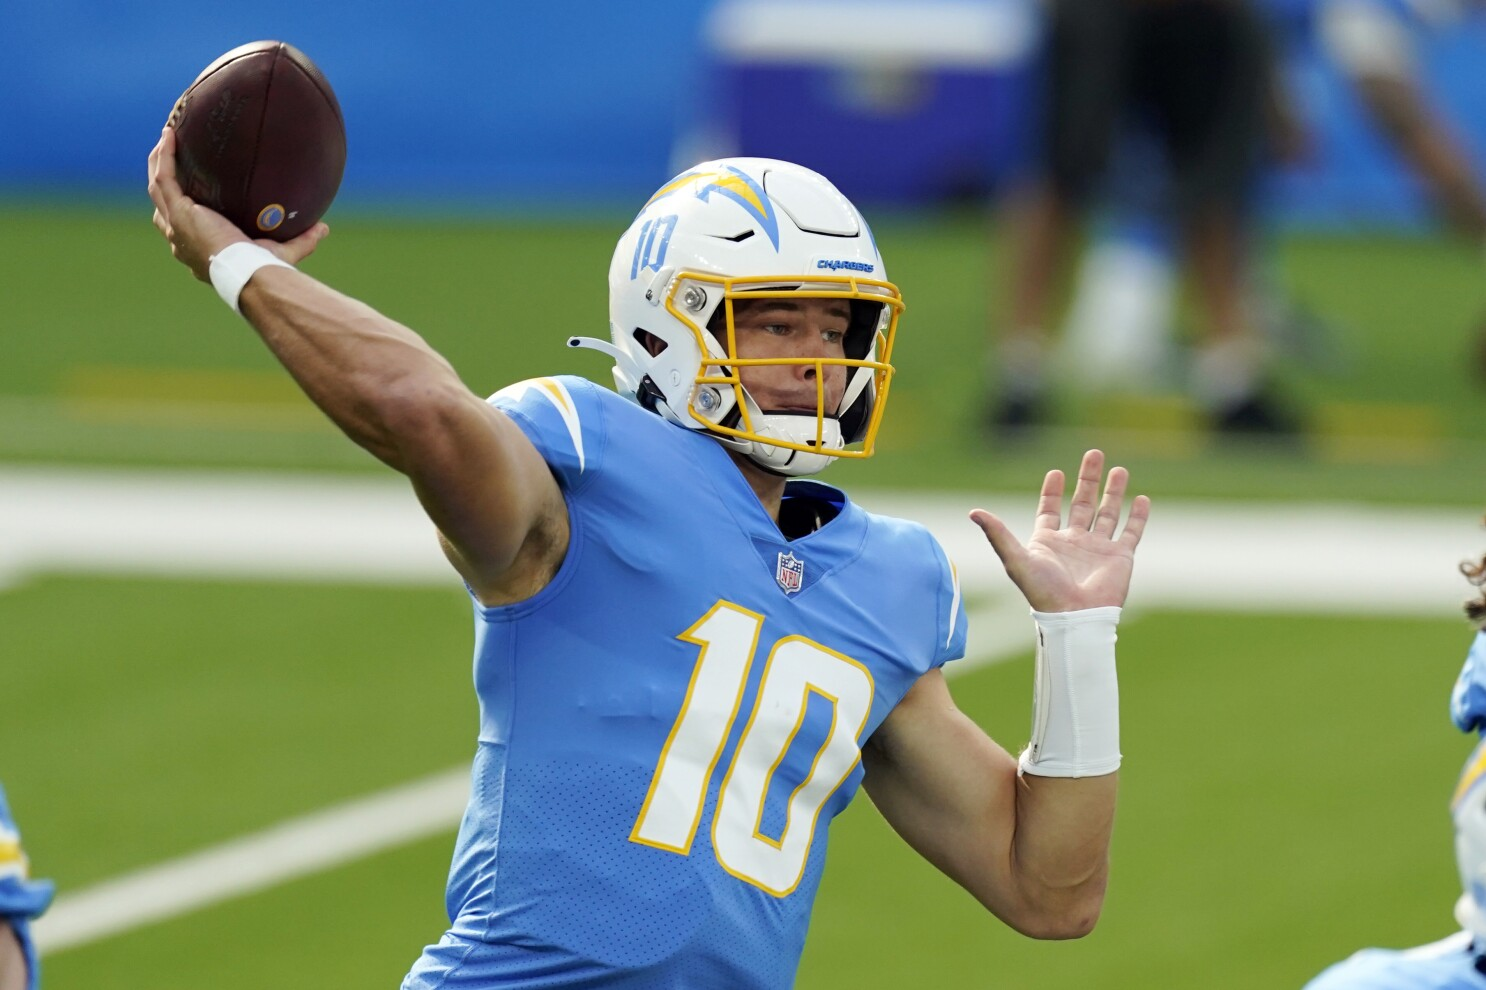 Chargers barely beat Jets; Justin Herbert sets rookie record - Los Angeles Times